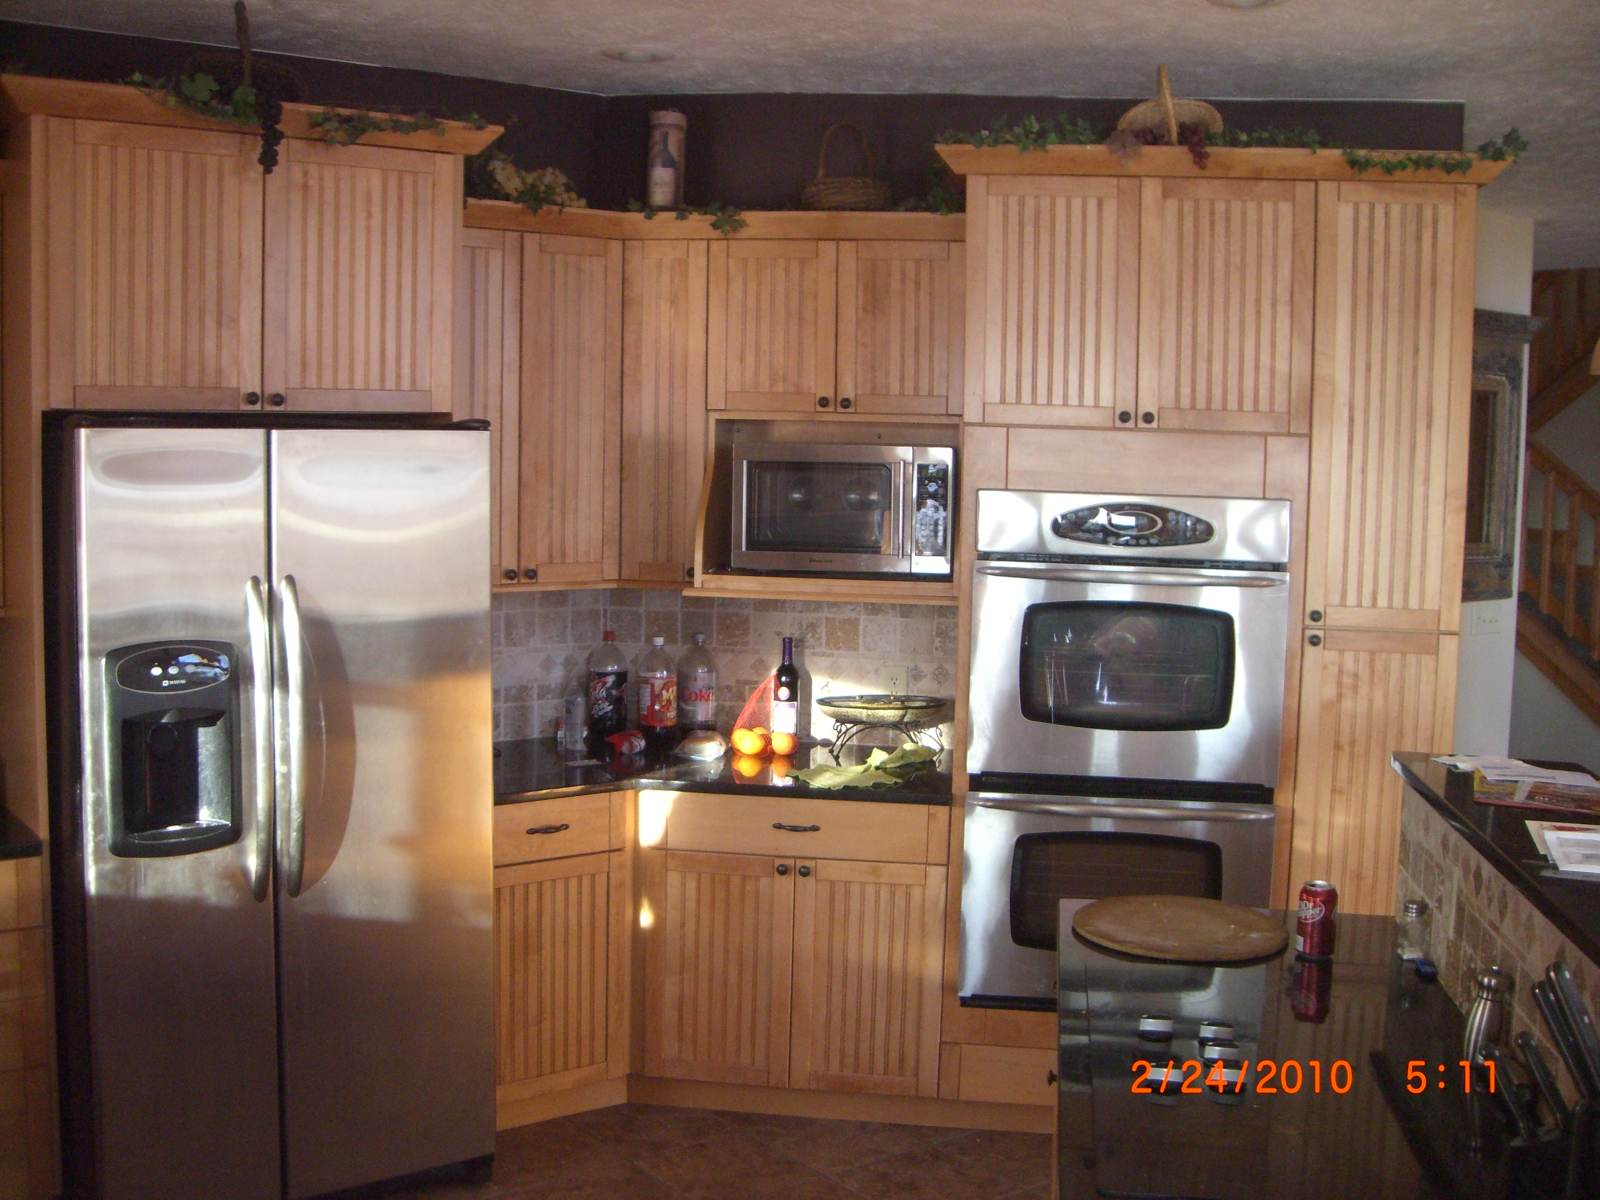 bonafidehomes kitchen remodeling lincoln ne Image Gallery Samples of what we ve done before